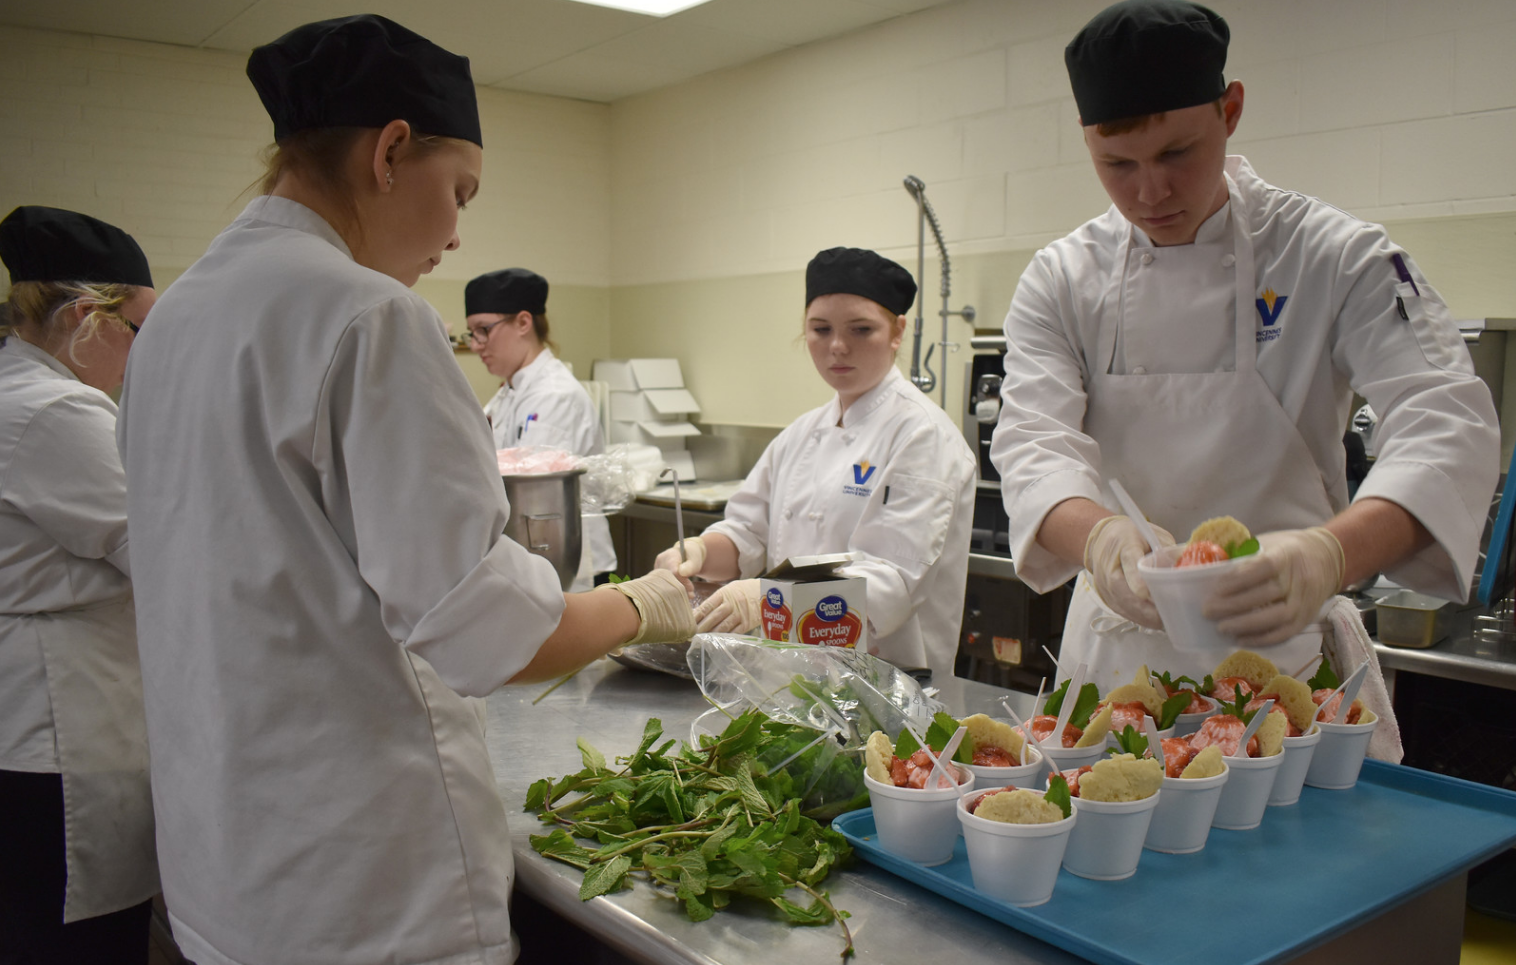 Culinary Arts, Restaurant and Food Services, and Hotel/Motel Management (CG)